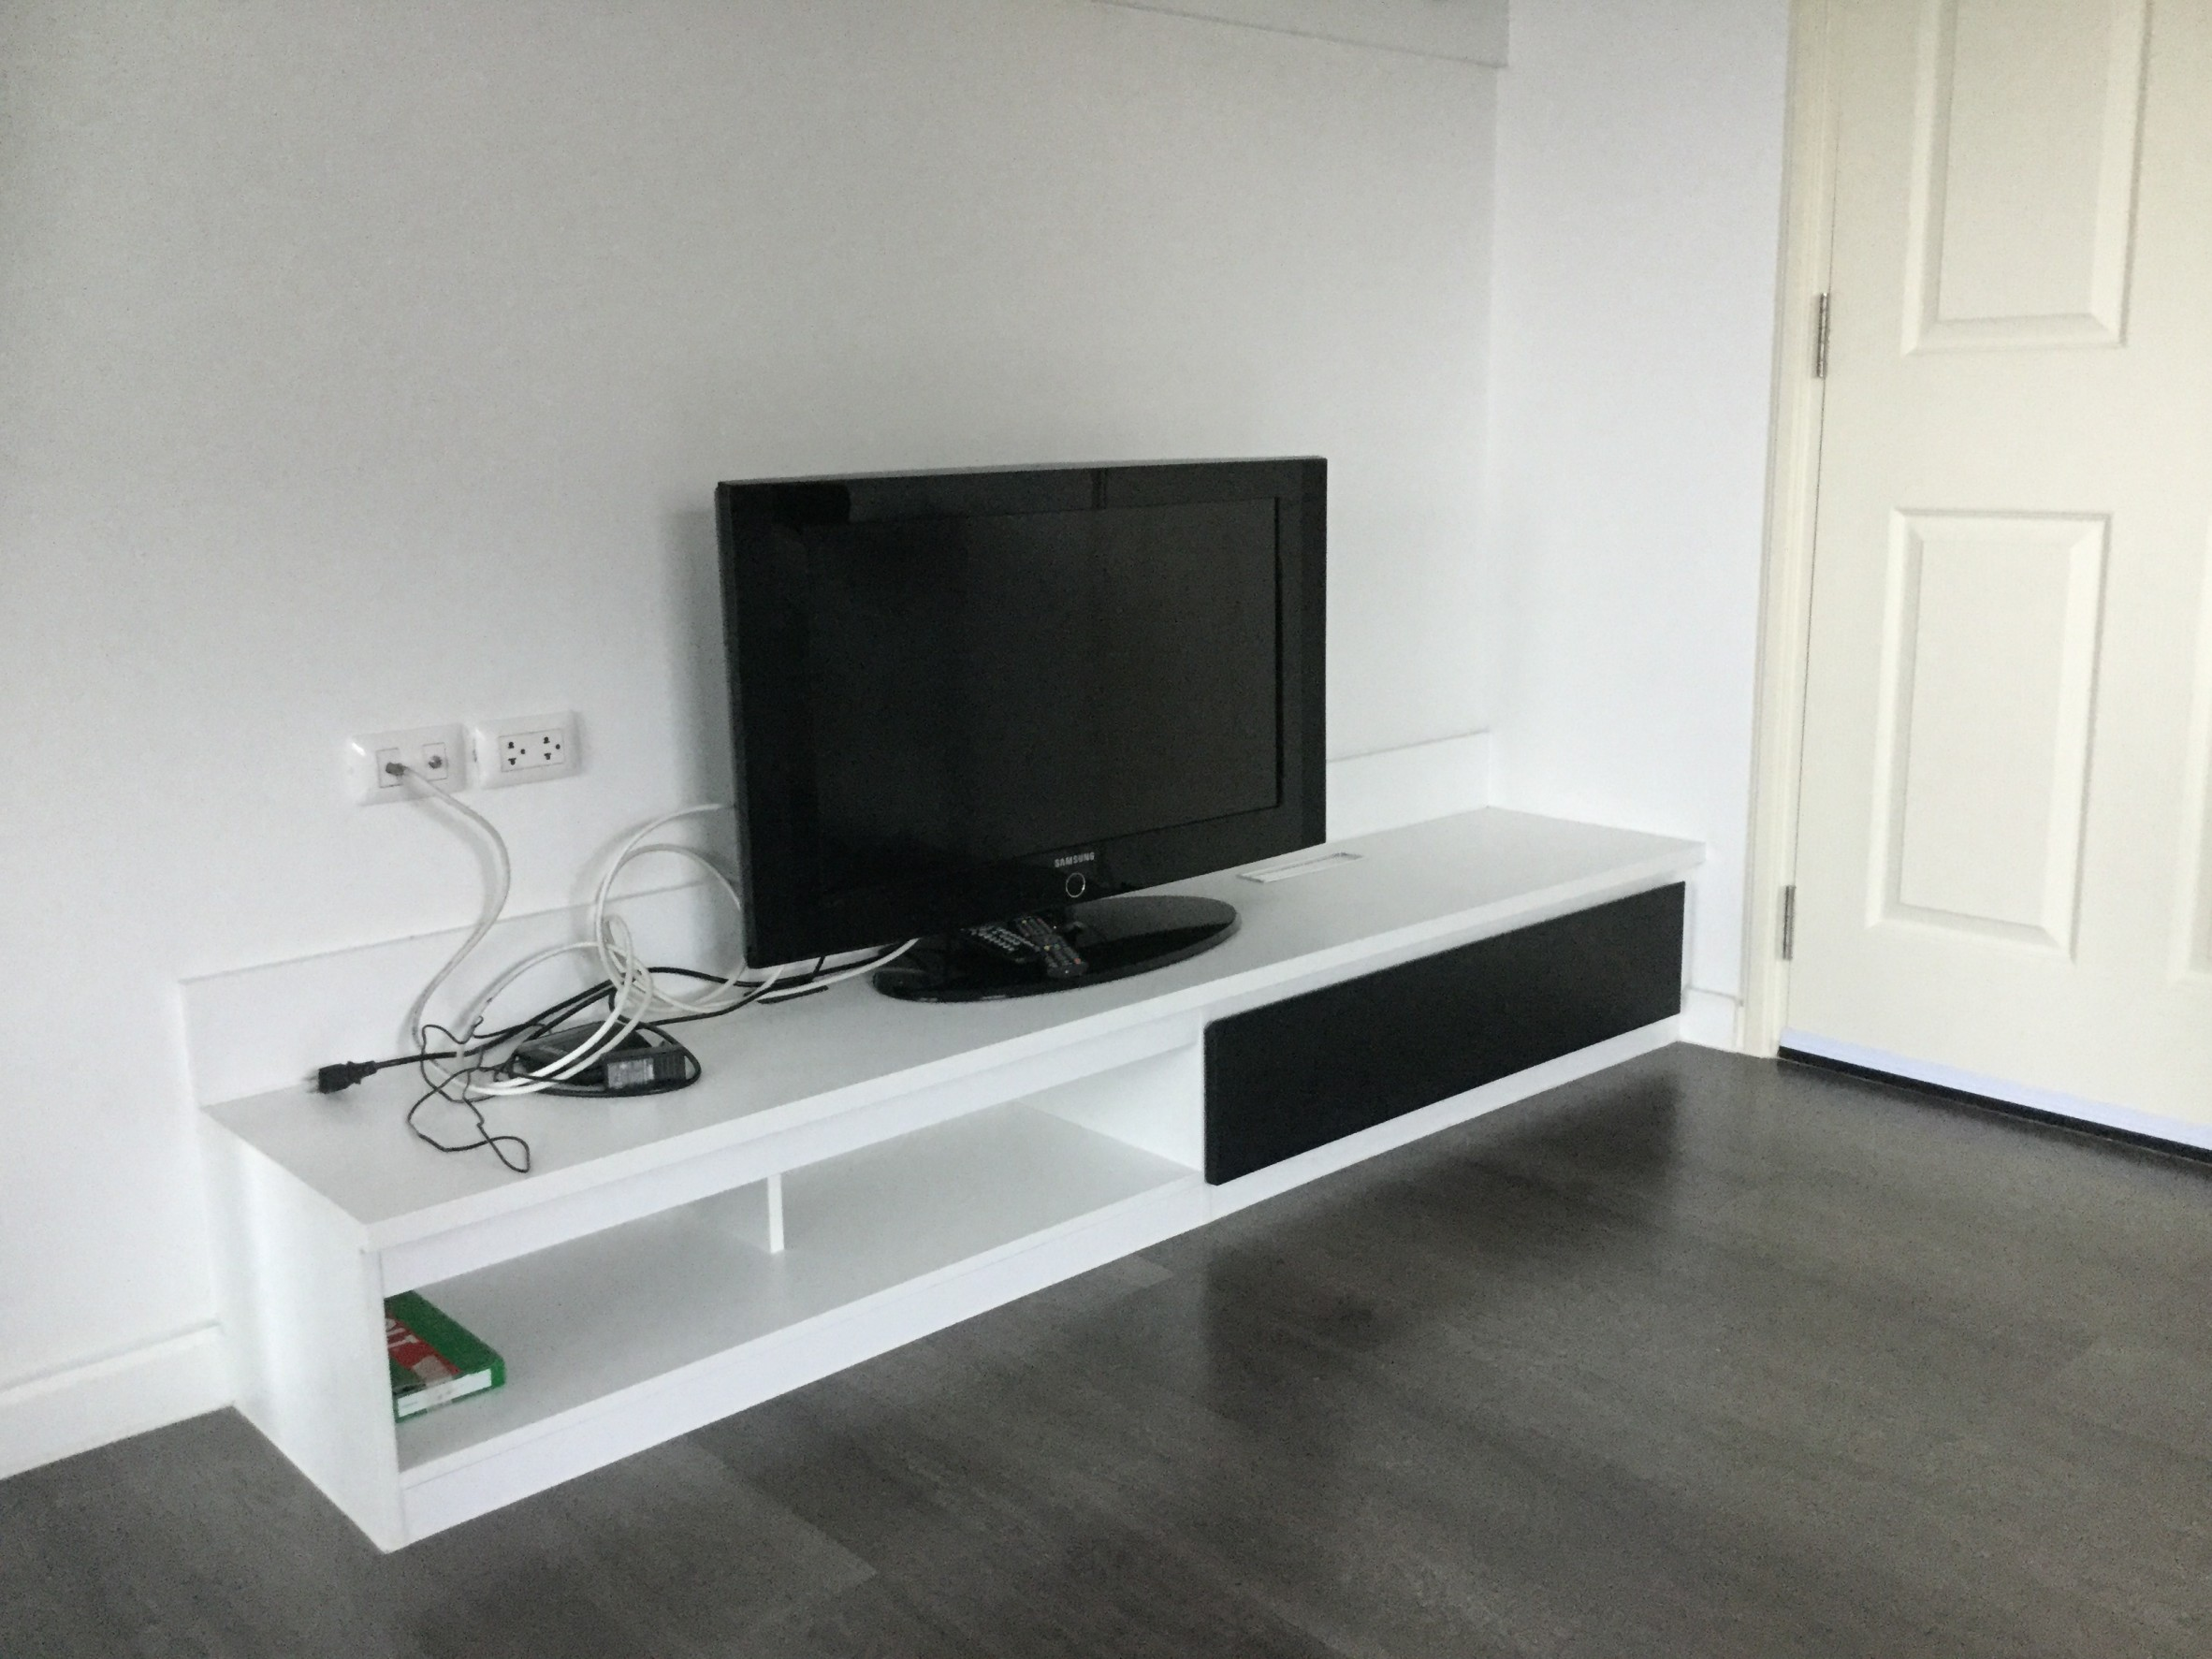 For RentCondoRangsit, Patumtani : For rent D Condo Thammasat Phase 1, fully furnished, ready to move in, corner room